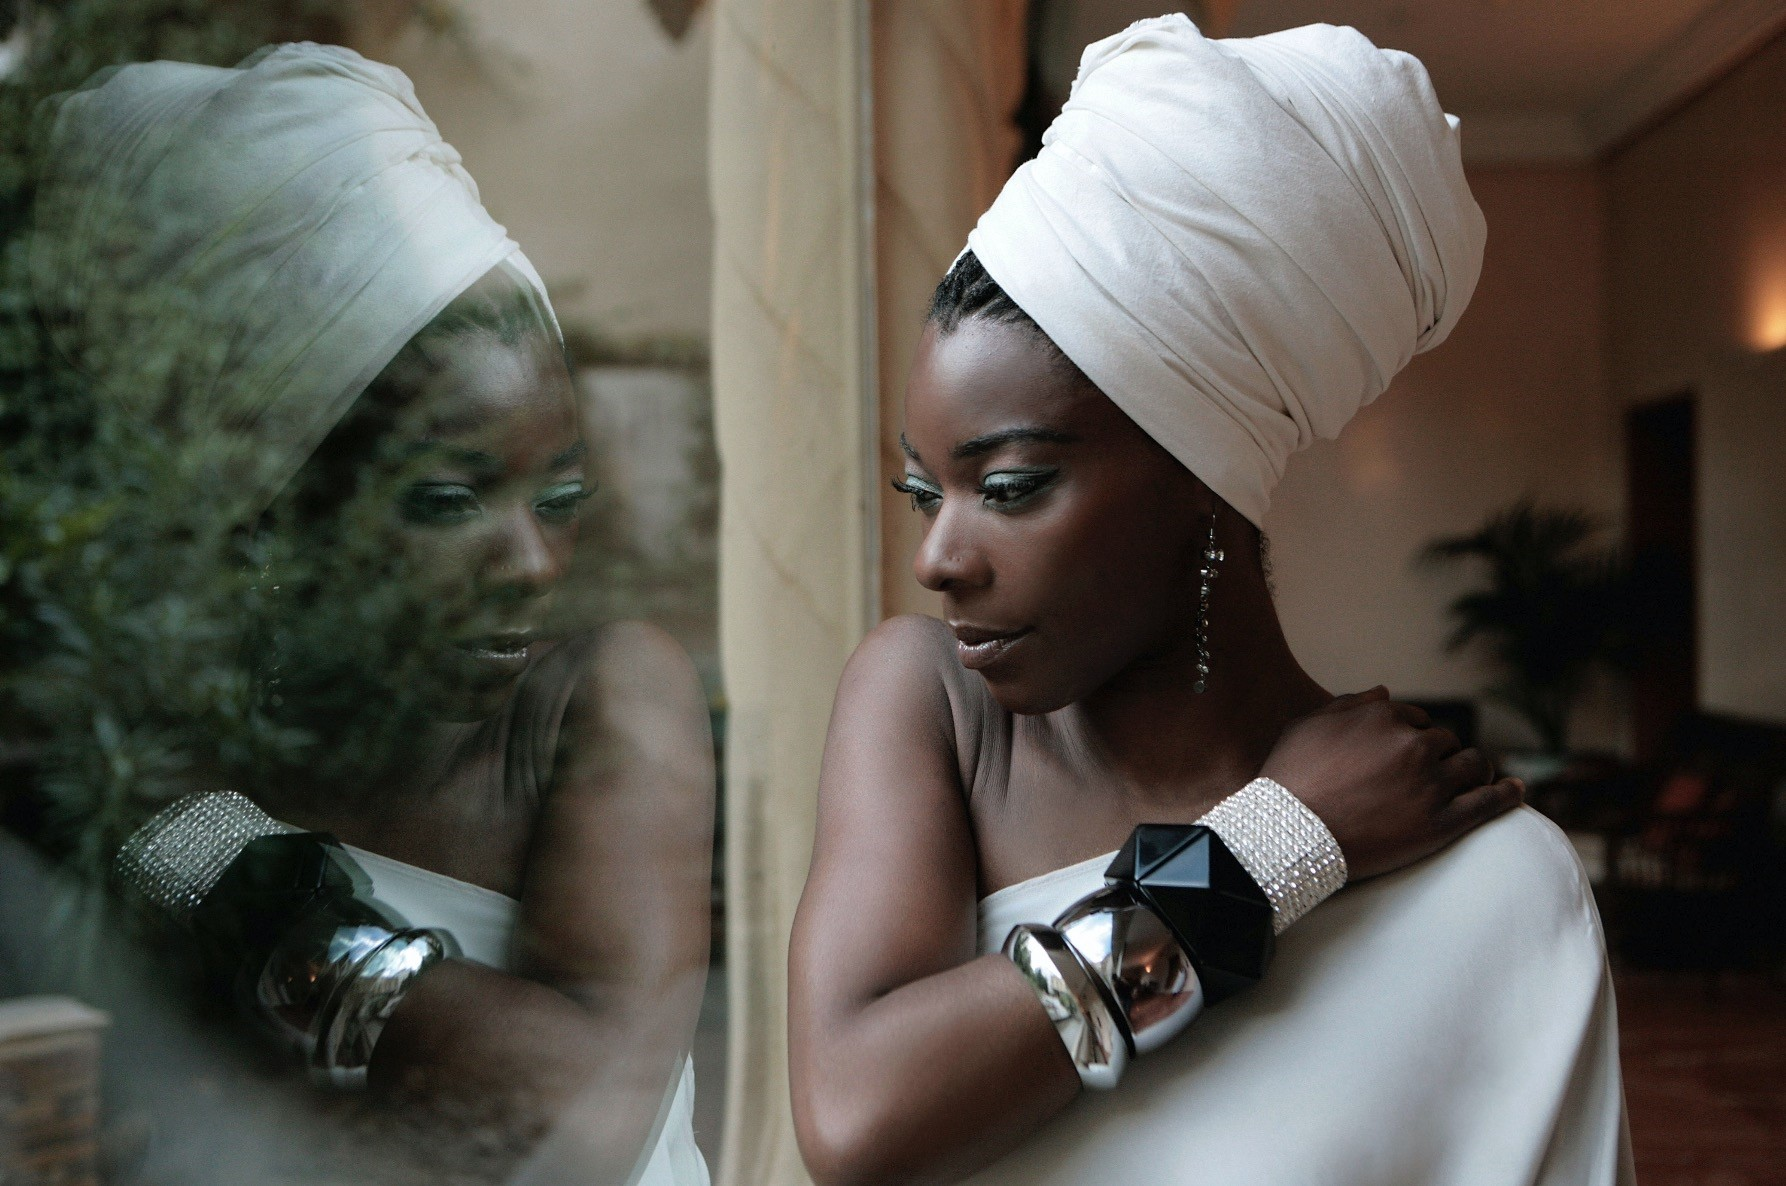 Preparing to release a new album this autumn, Buika will perform her old and new songs in Istanbul.